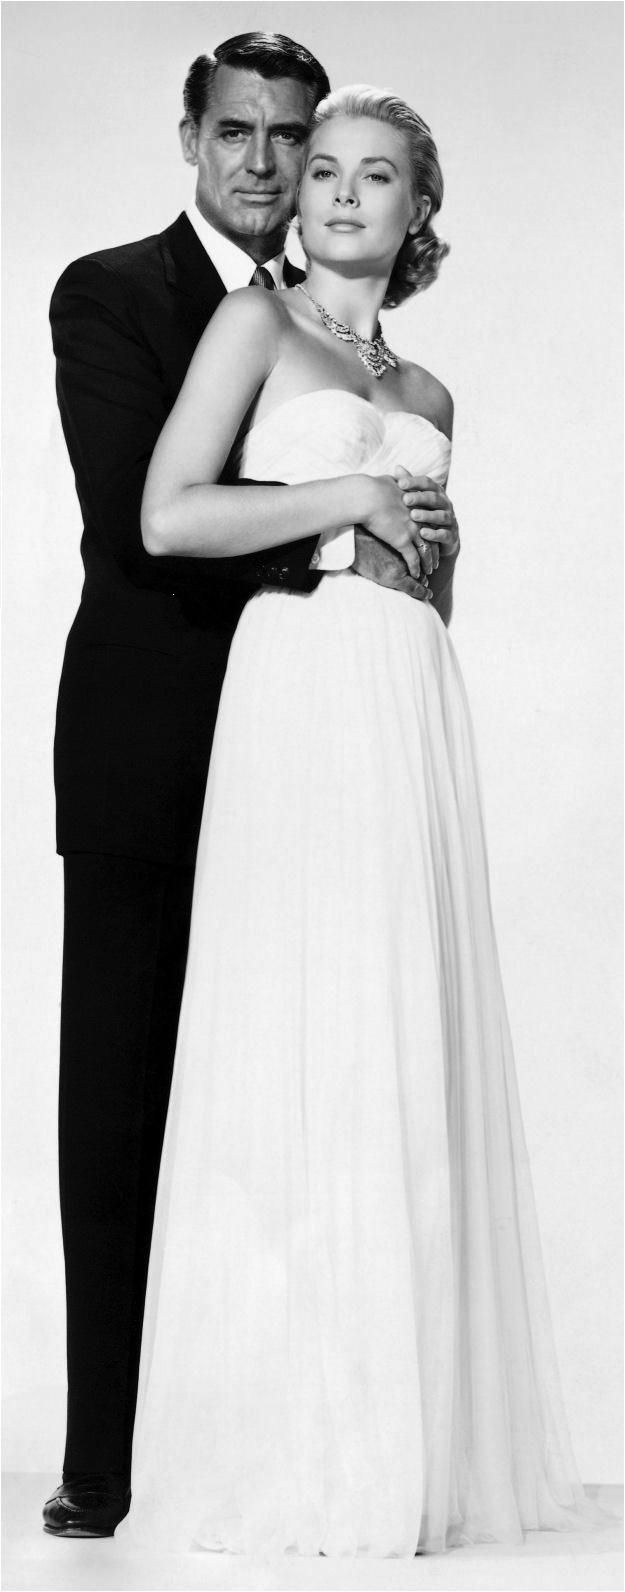 TO CATCH A THIEF: Cary Grant & Grace Kelly, Photo Still, 1955, © Estate of Alfred Hitchcock / Paramount     lenin-imports.cm